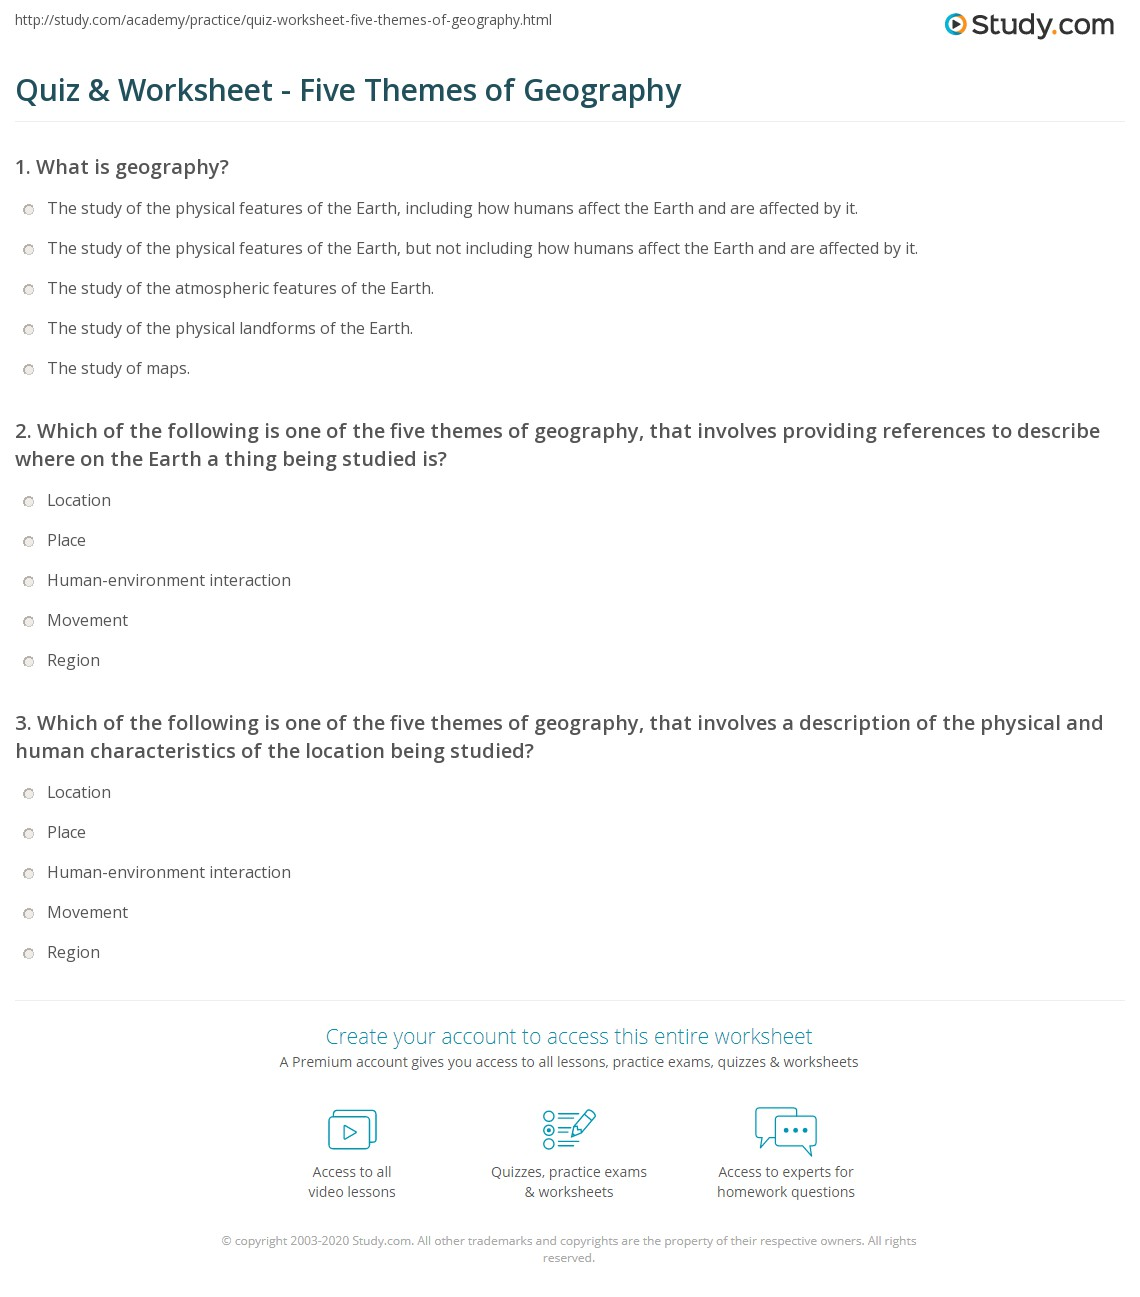 Printables 5 Themes Of Geography Worksheets quiz worksheet five themes of geography study com print what are the worksheet